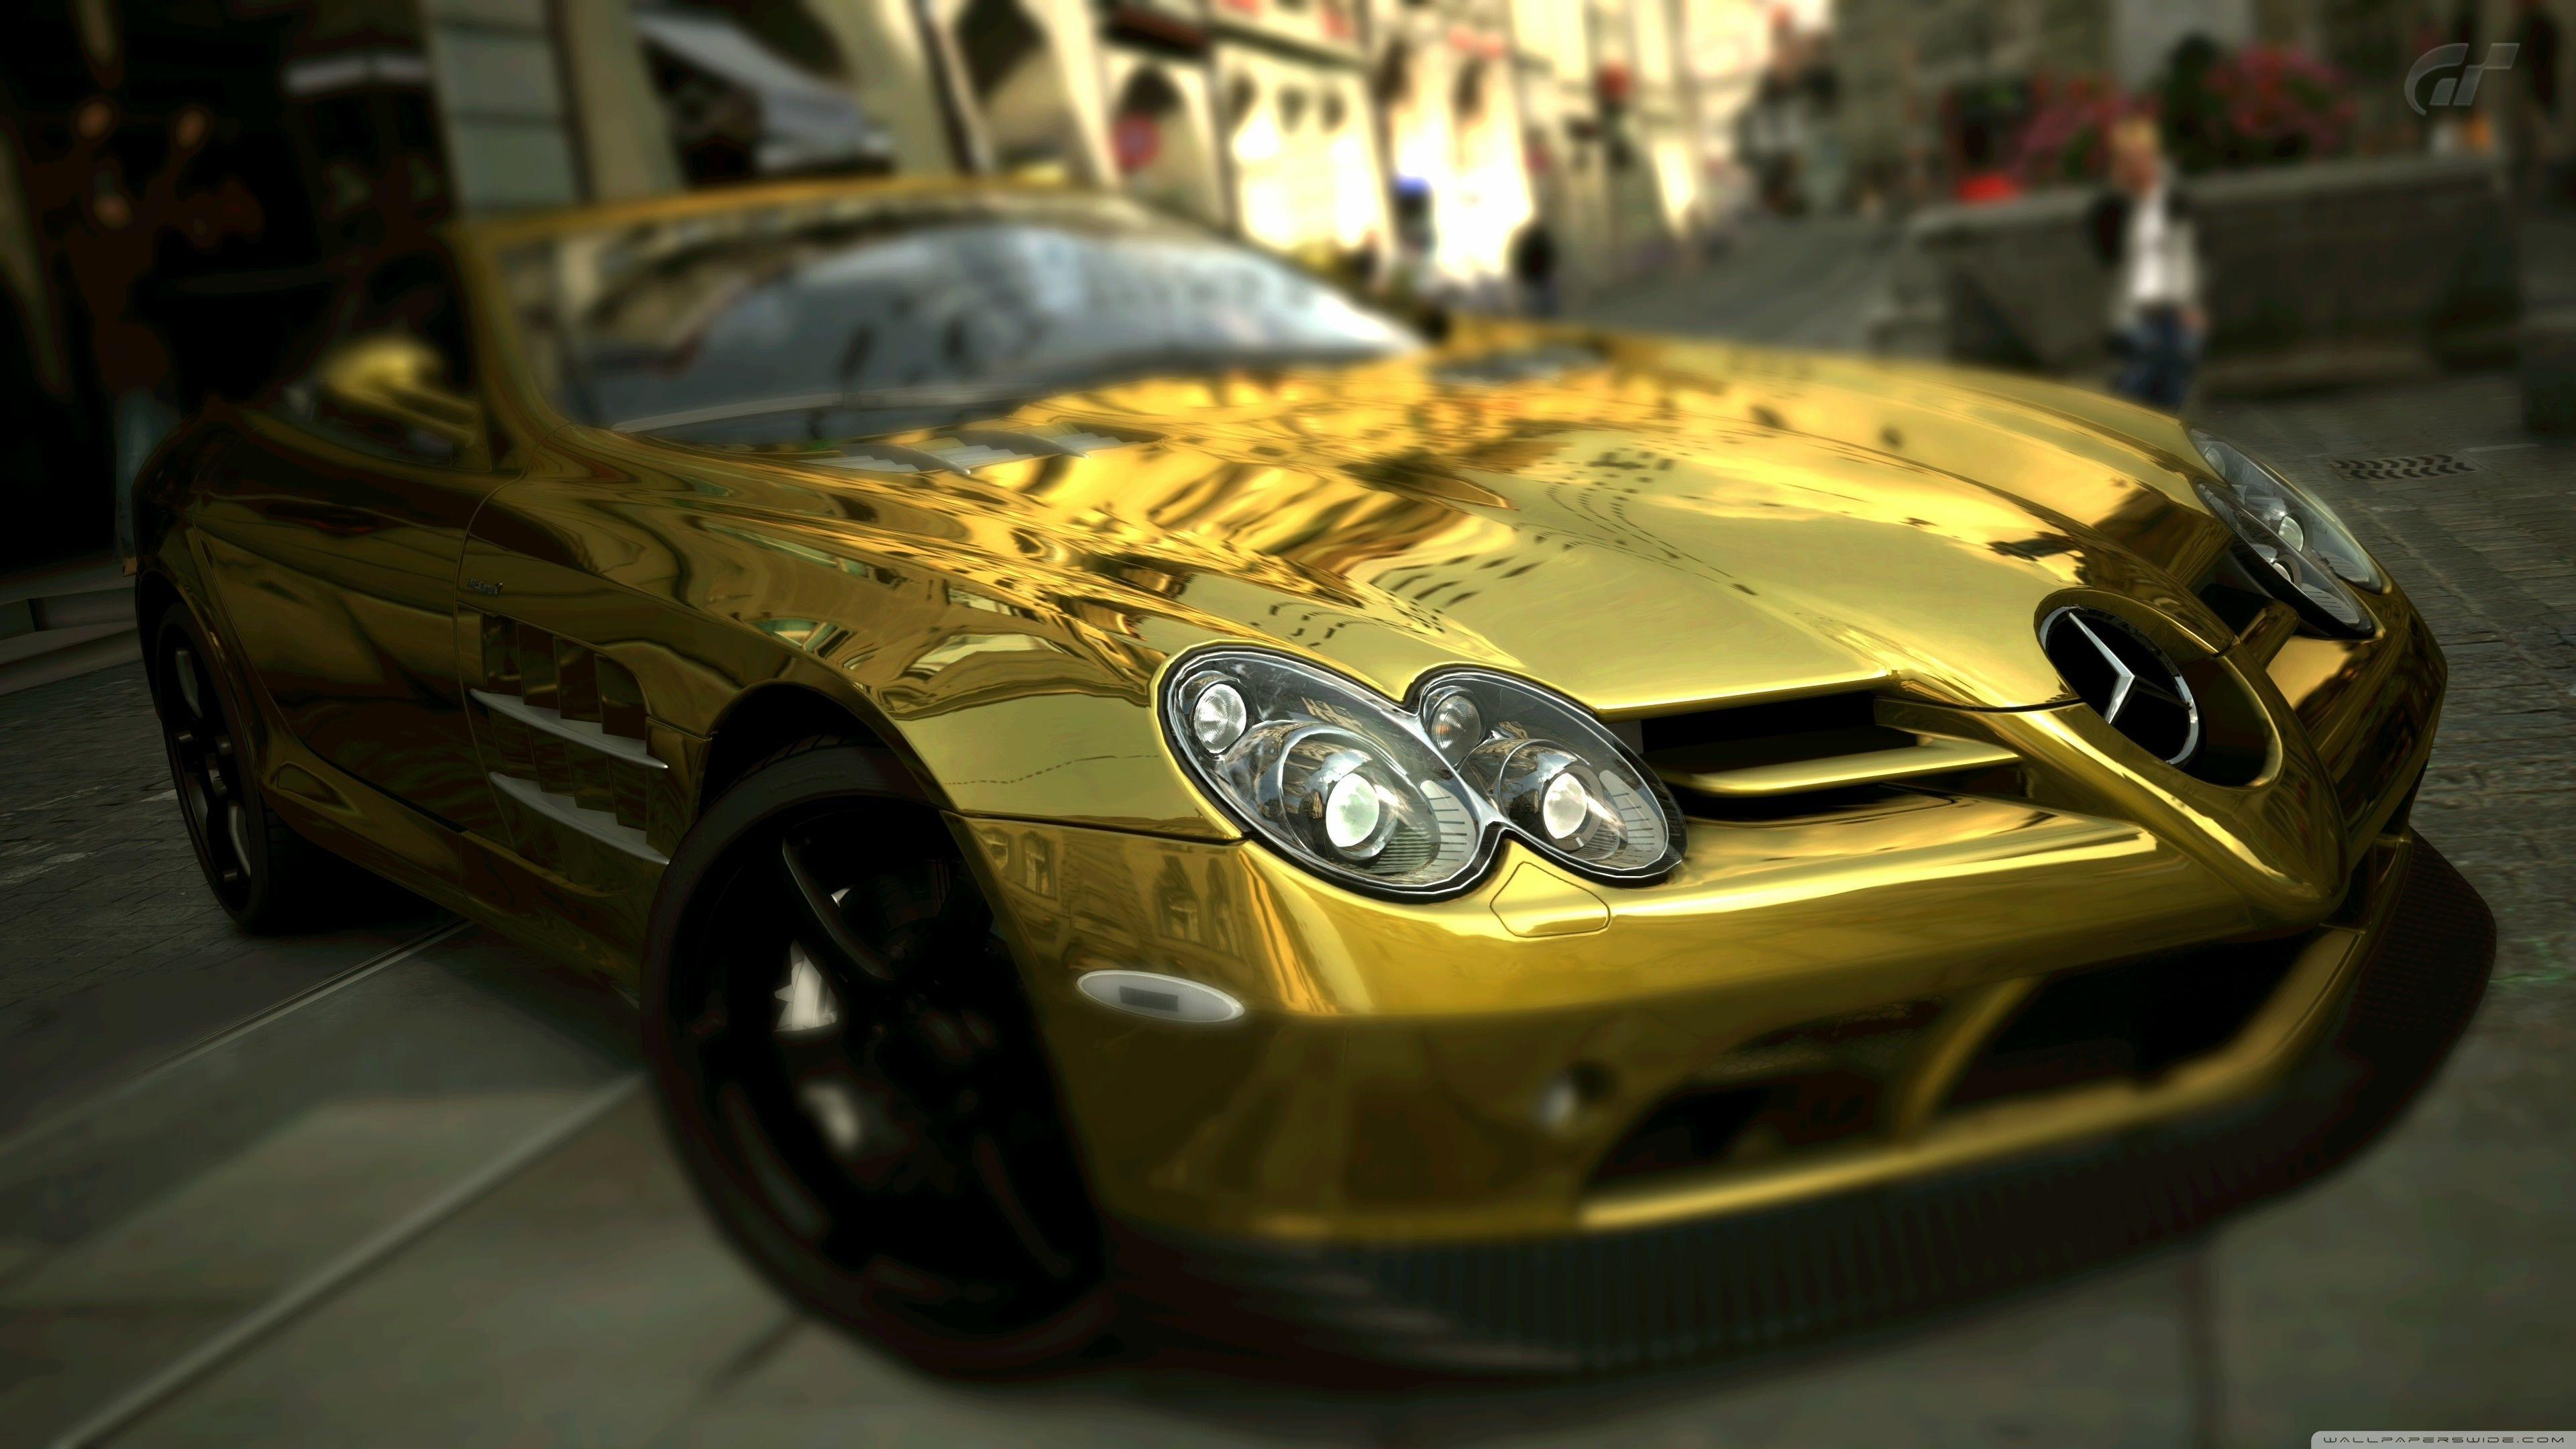 891 Mercedes HD Wallpapers | Backgrounds - Wallpaper Abyss